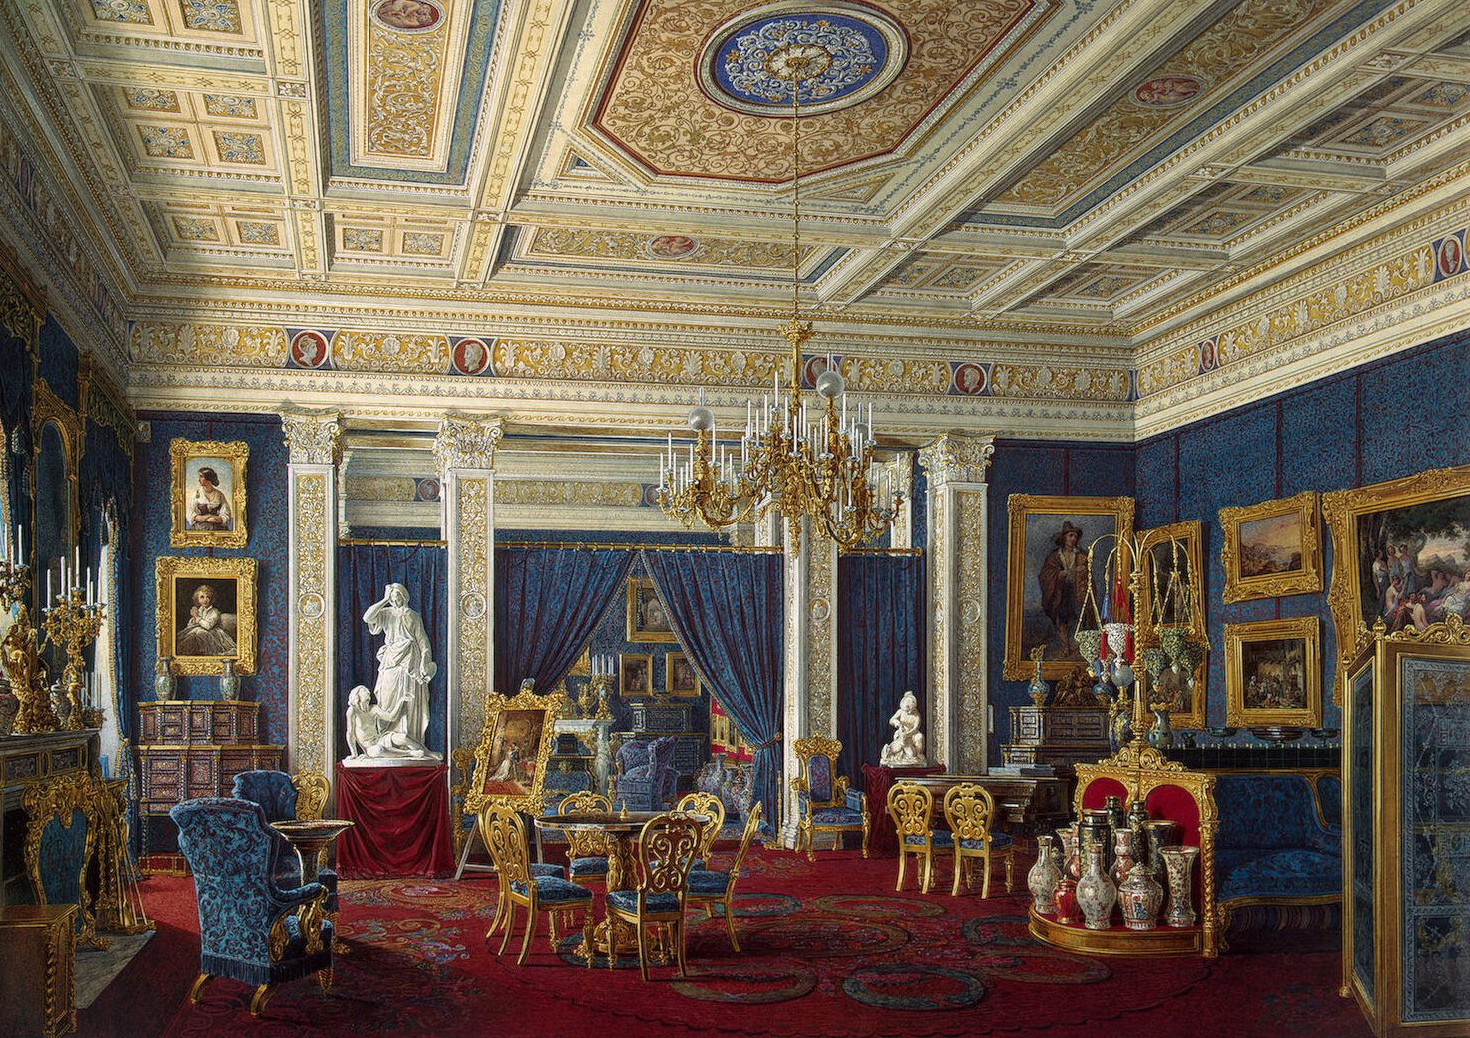 Palace Bedroom - Viewi...